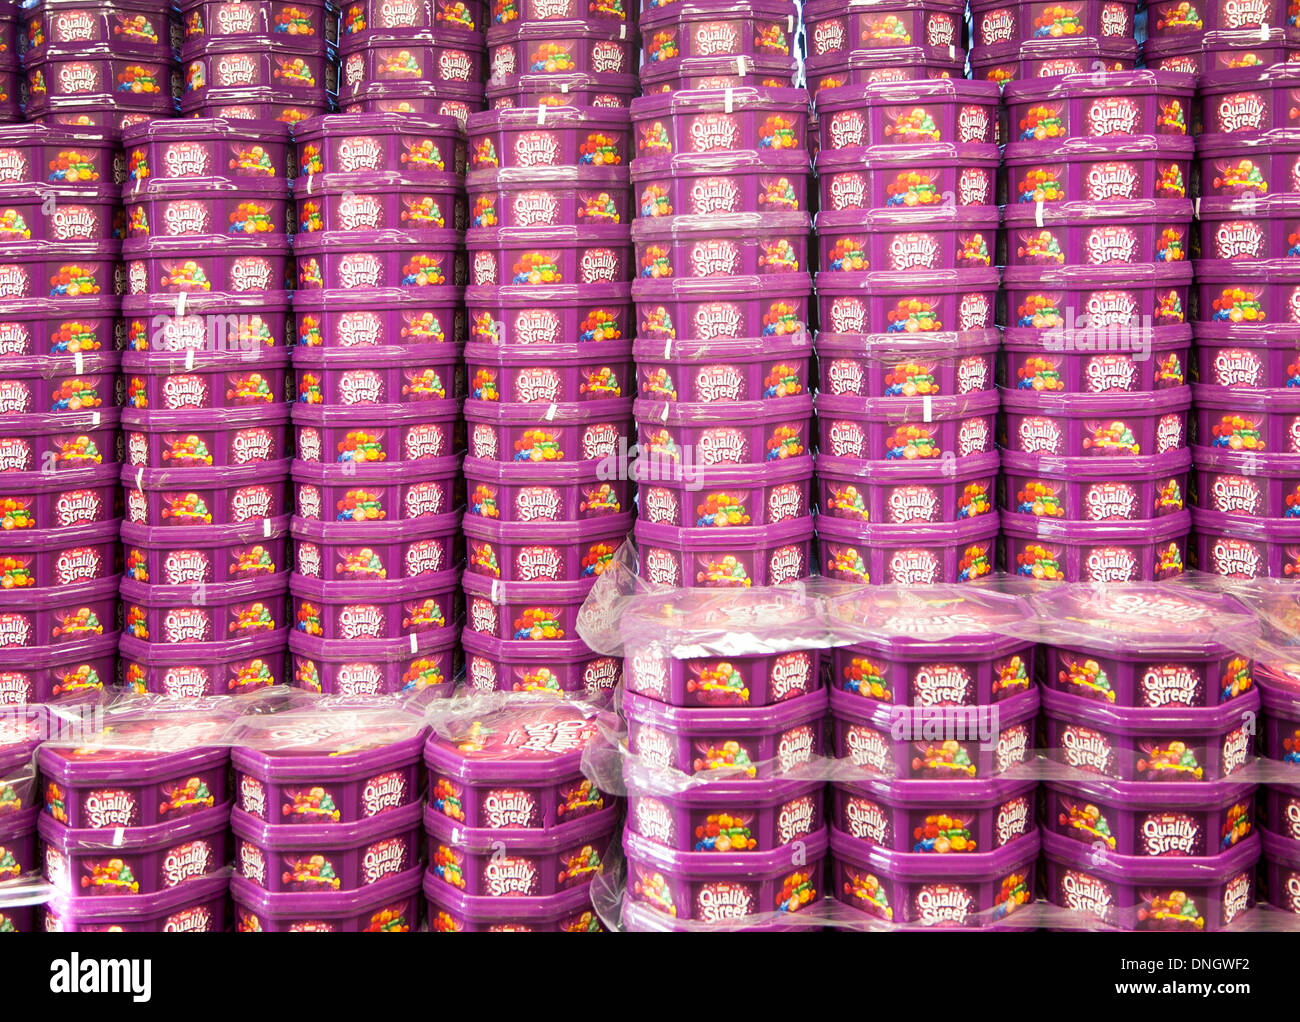 Piles of Quality Street chocolate tins piled up in a supermarket, UK - Stock Image